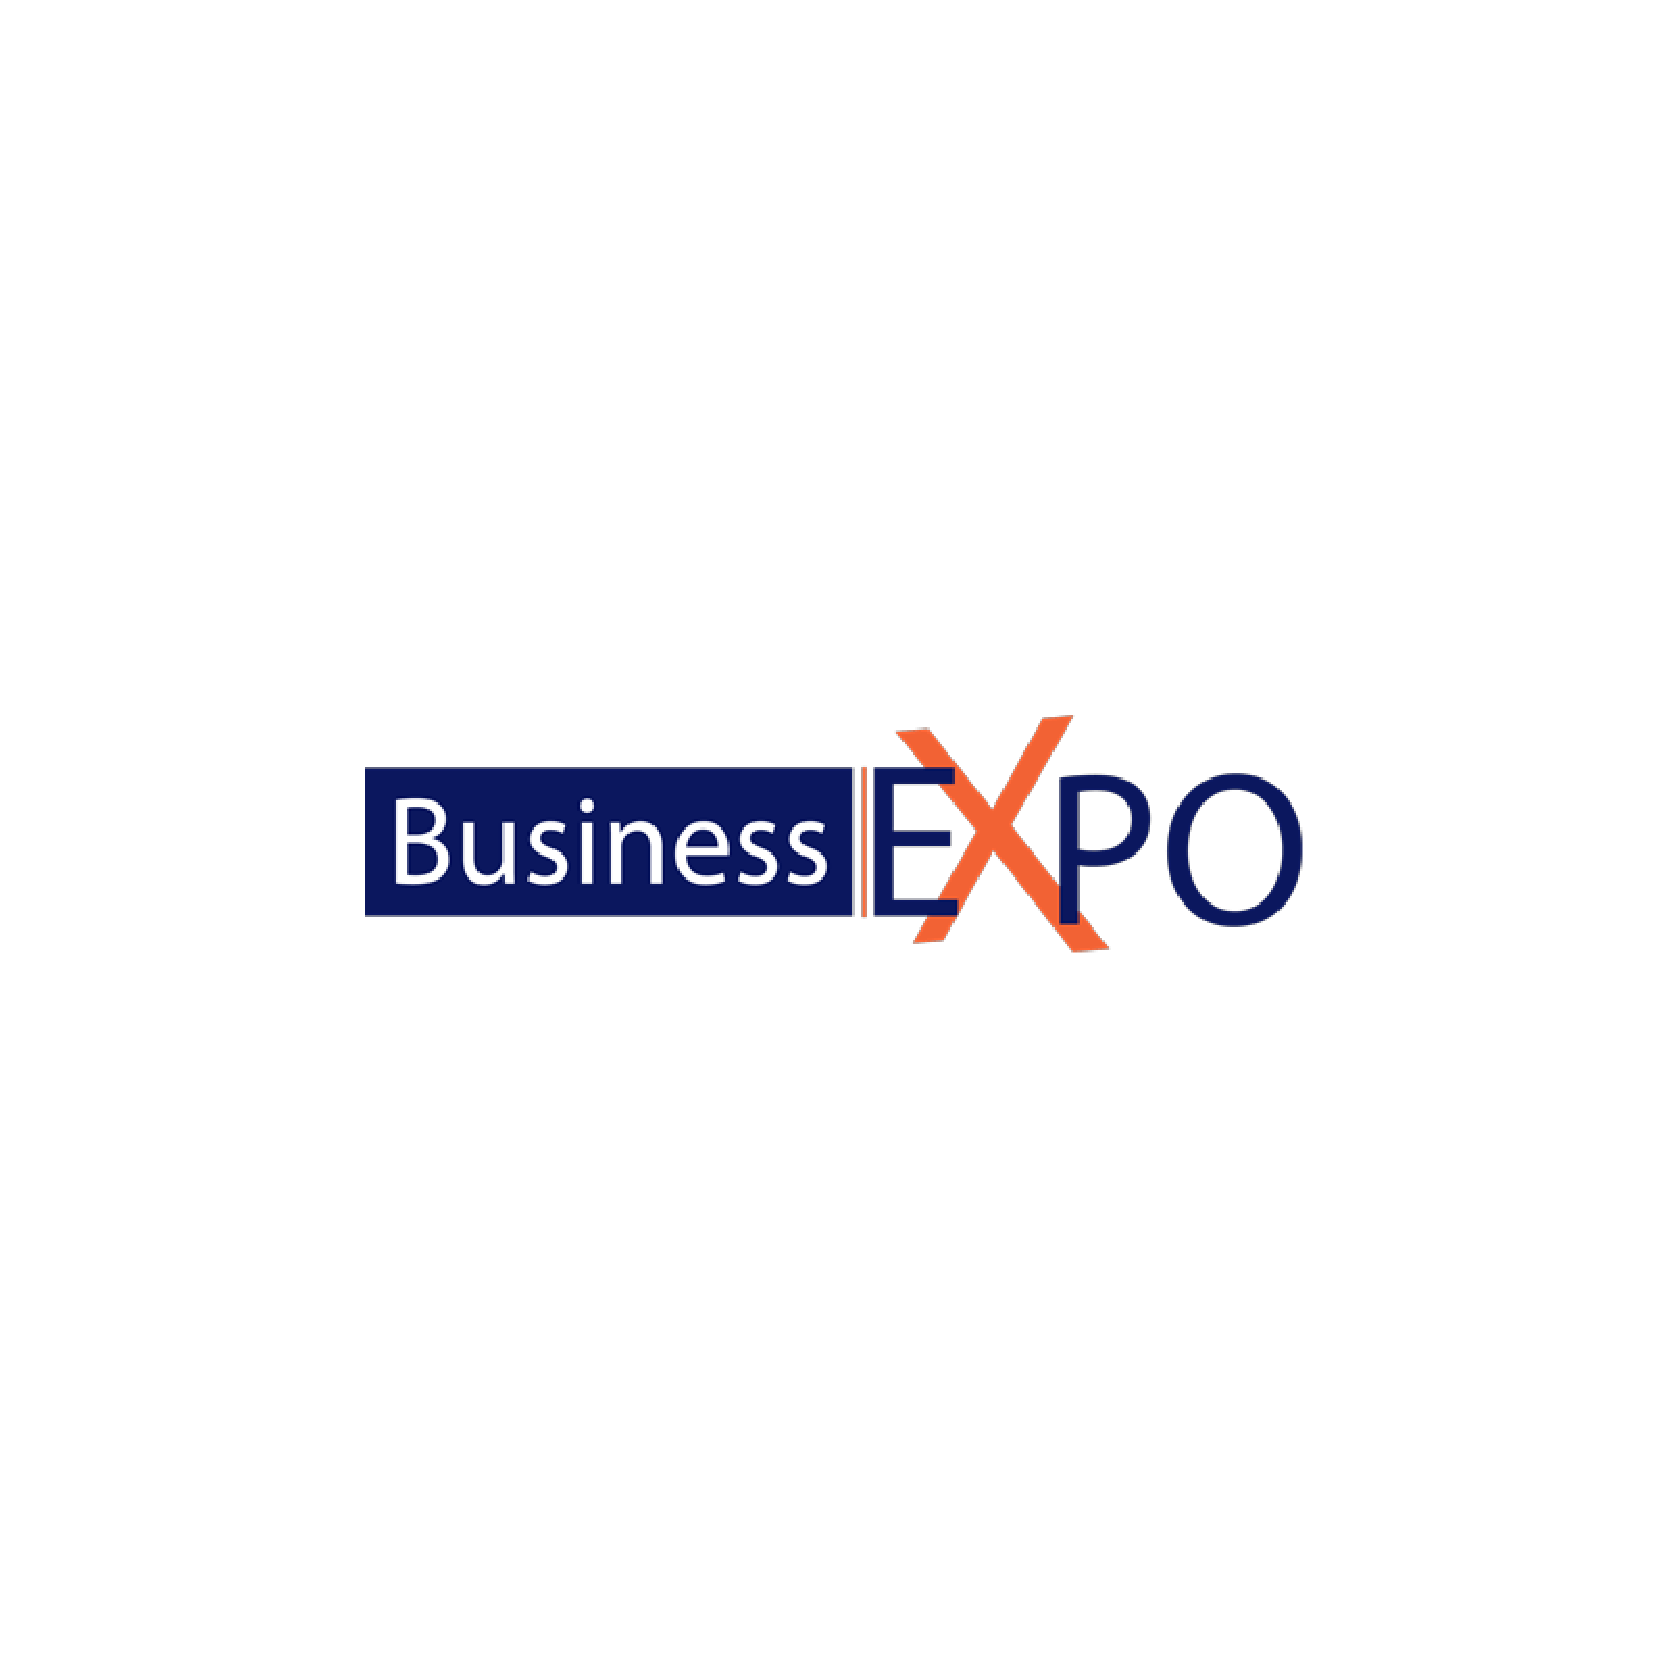 gnd_business-expo-logo-01.png